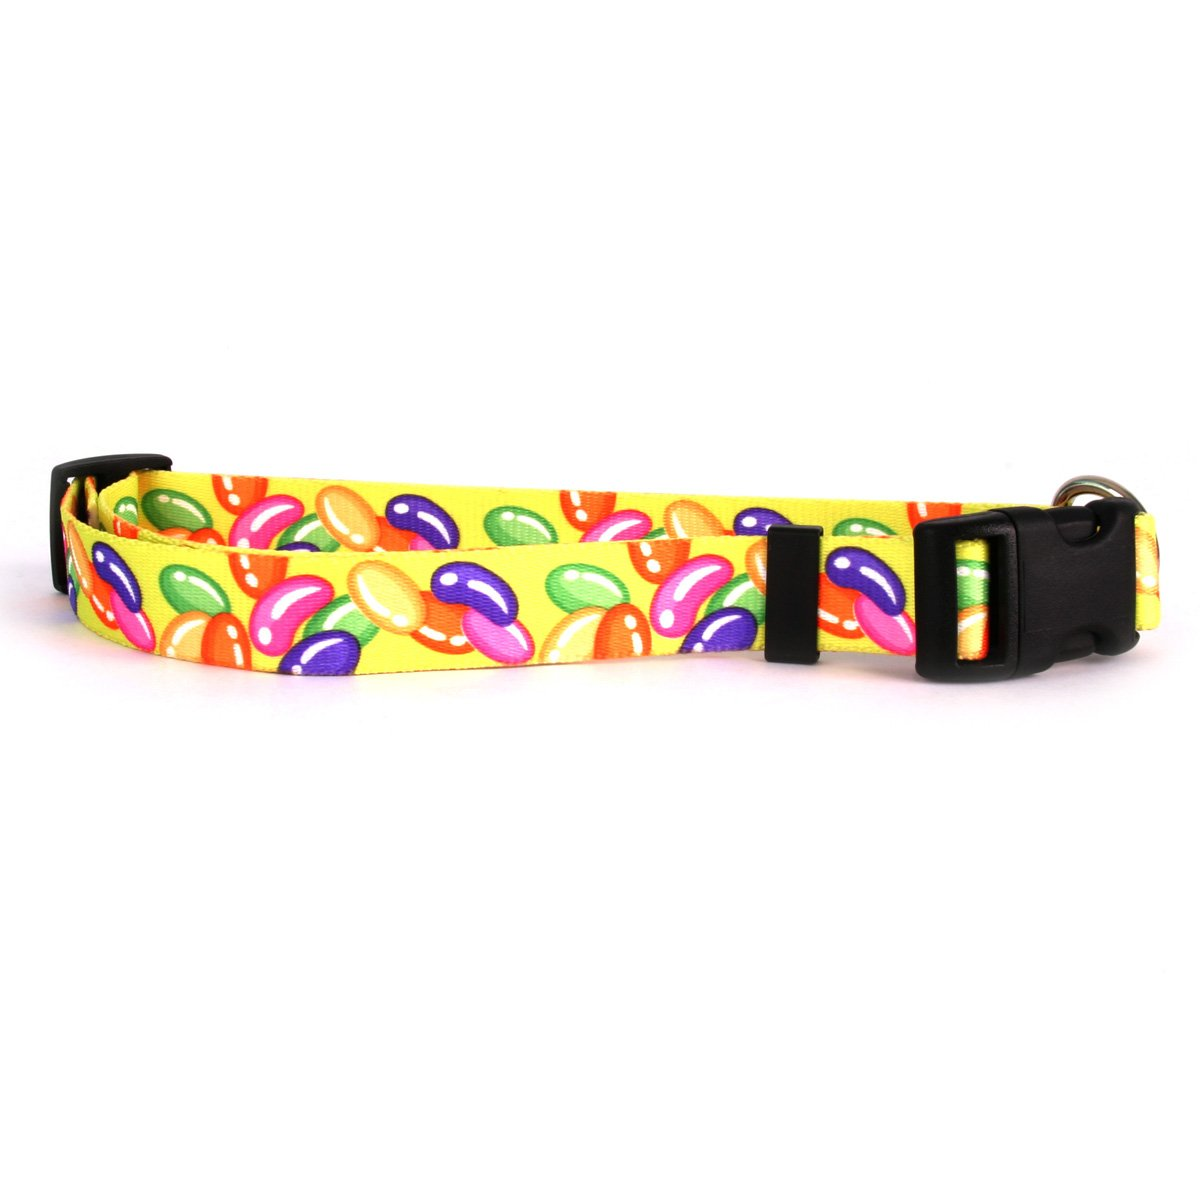 Yellow Dog Design Jelly Beans Dog Collar 3/4'' Wide and Fits Neck 10 to 14'', Small